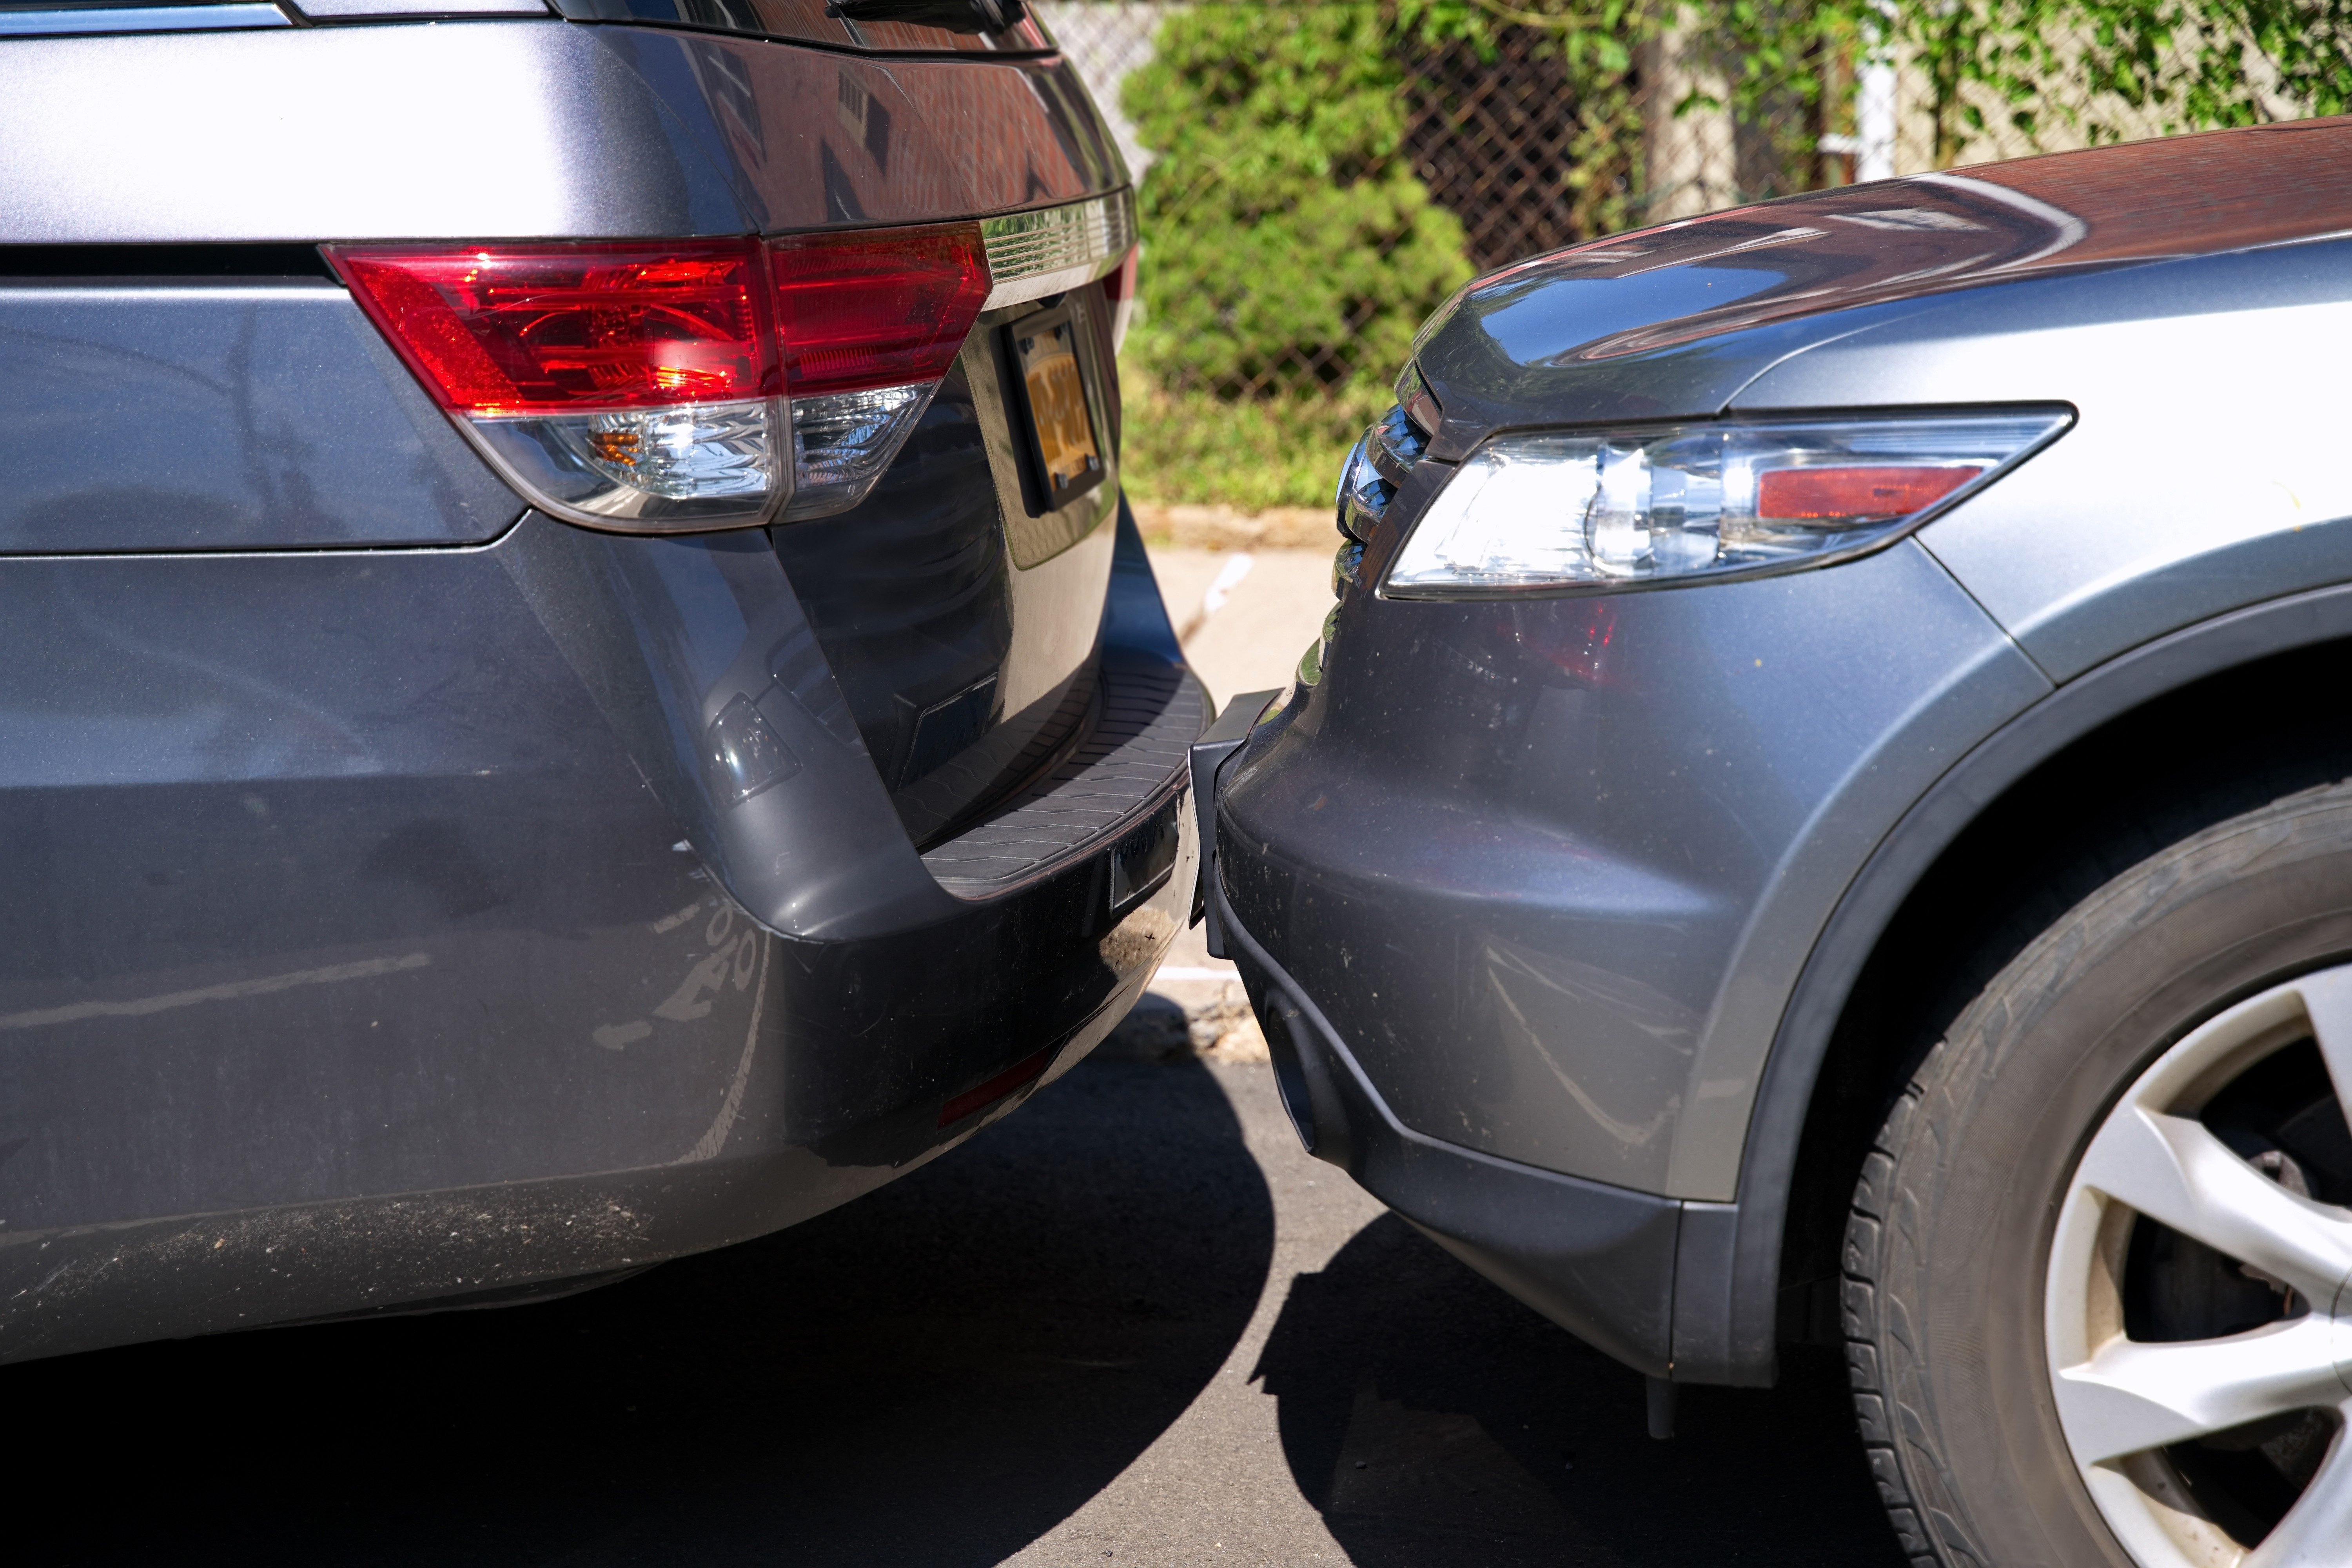 Cars touching bumpers at a residential parking lot is a typical sight living in a big congested city.